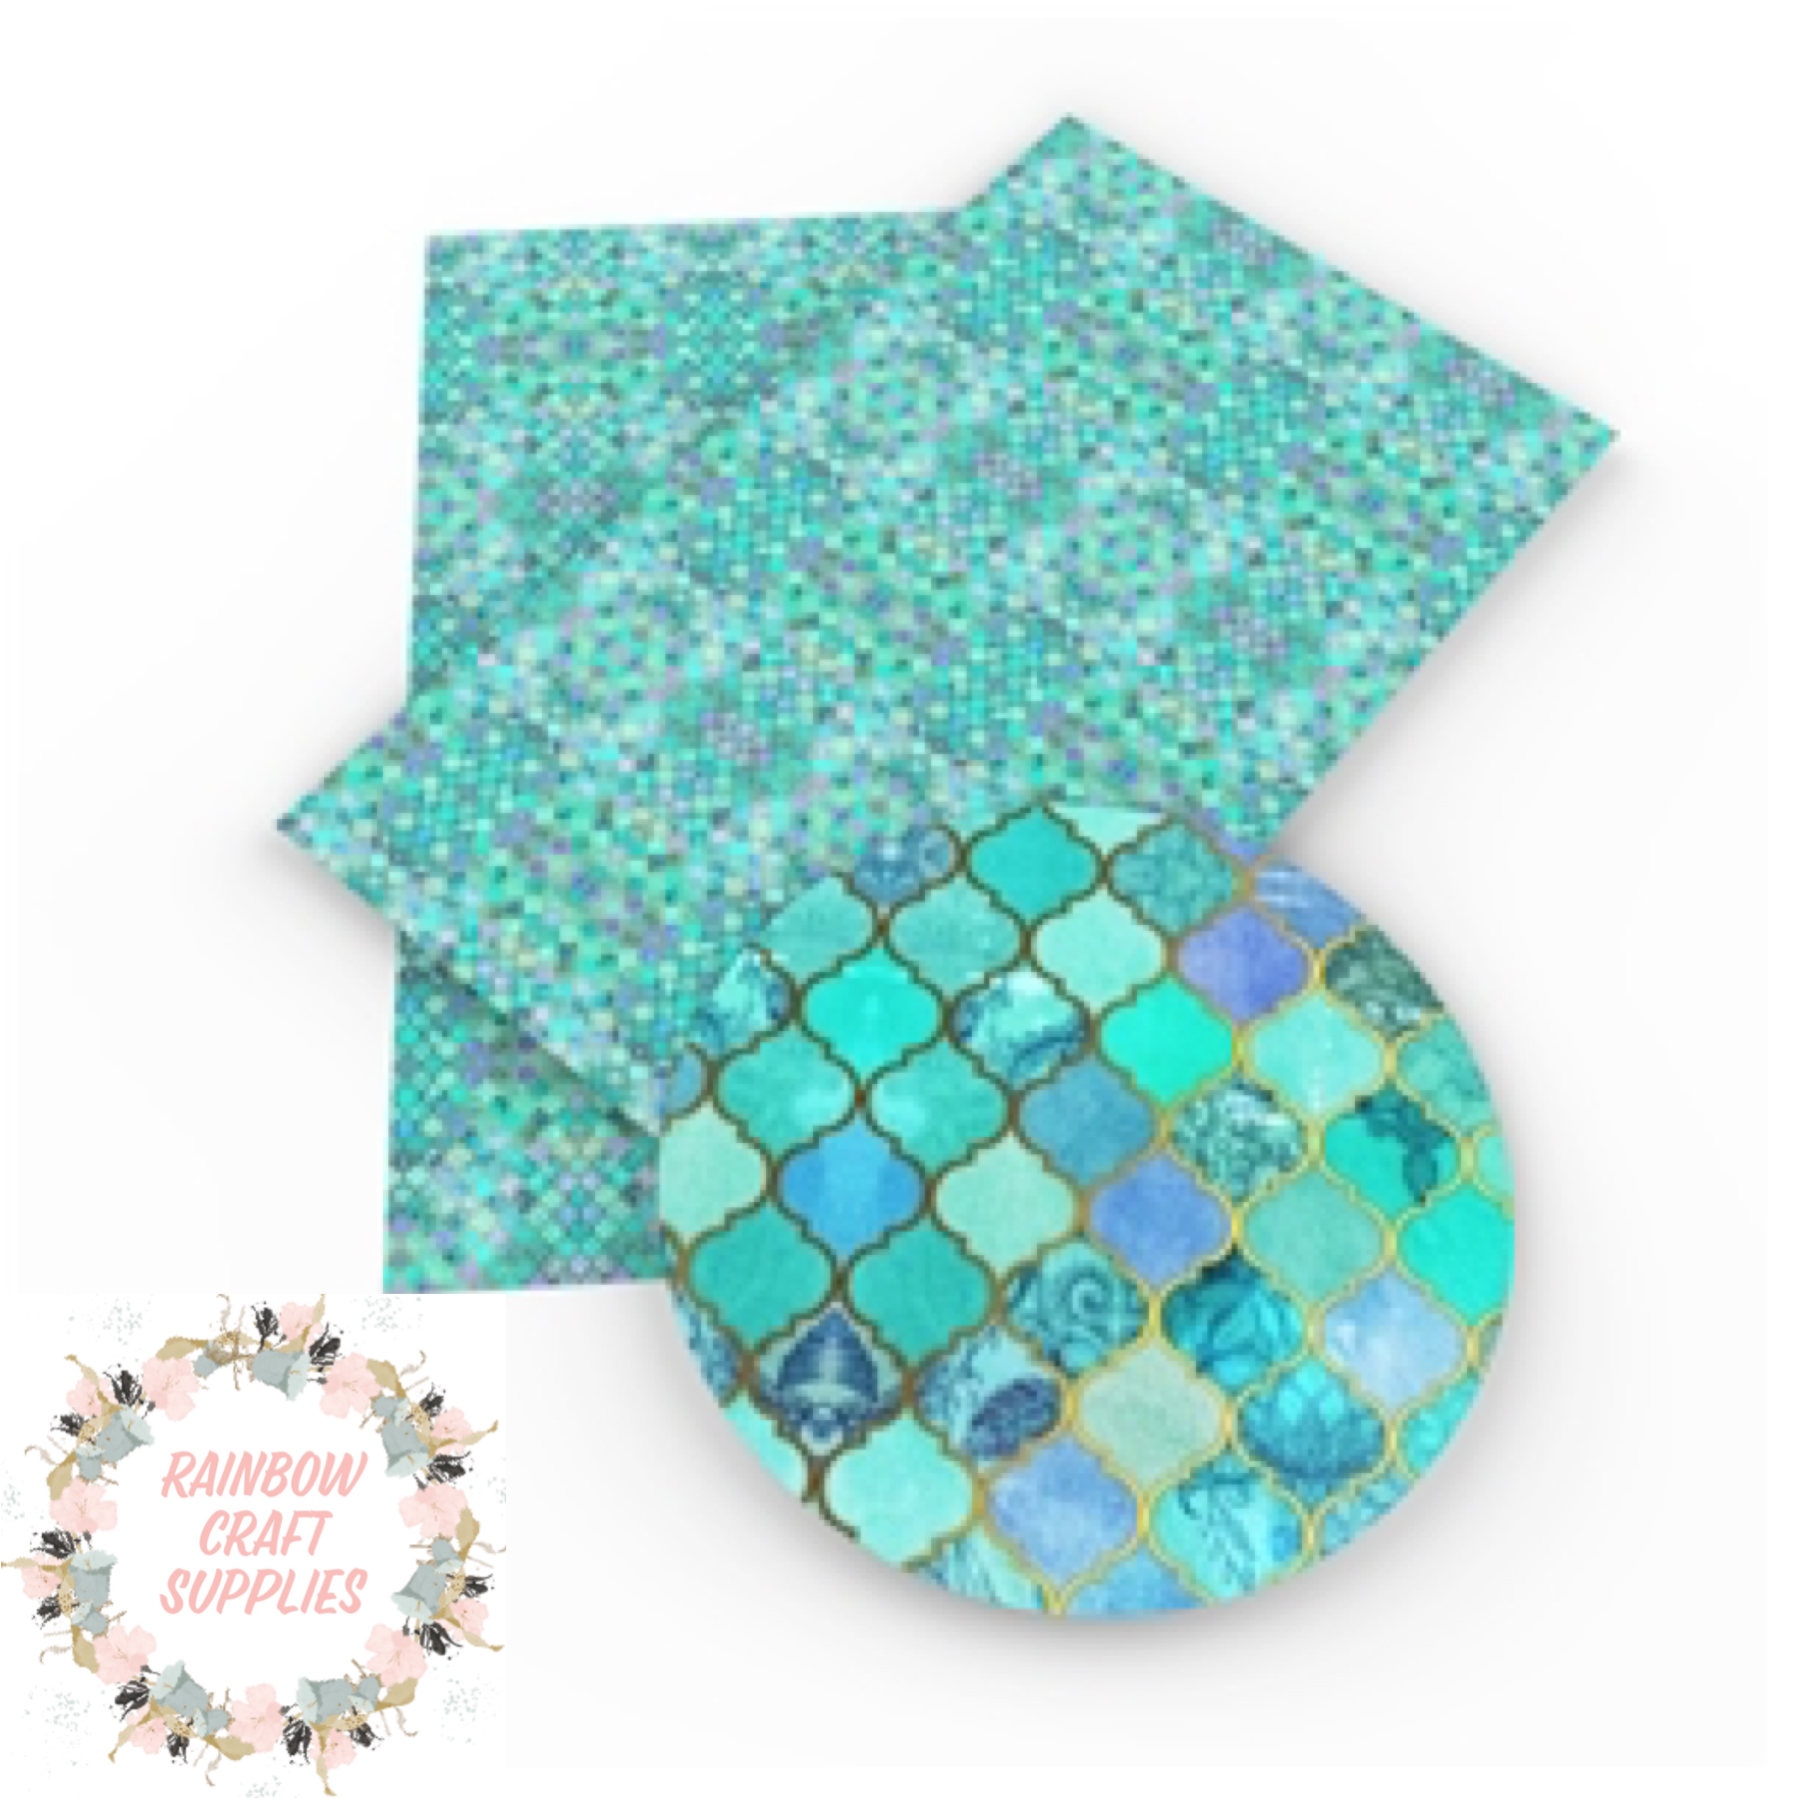 Mermaid tail patterned leatherette fabric